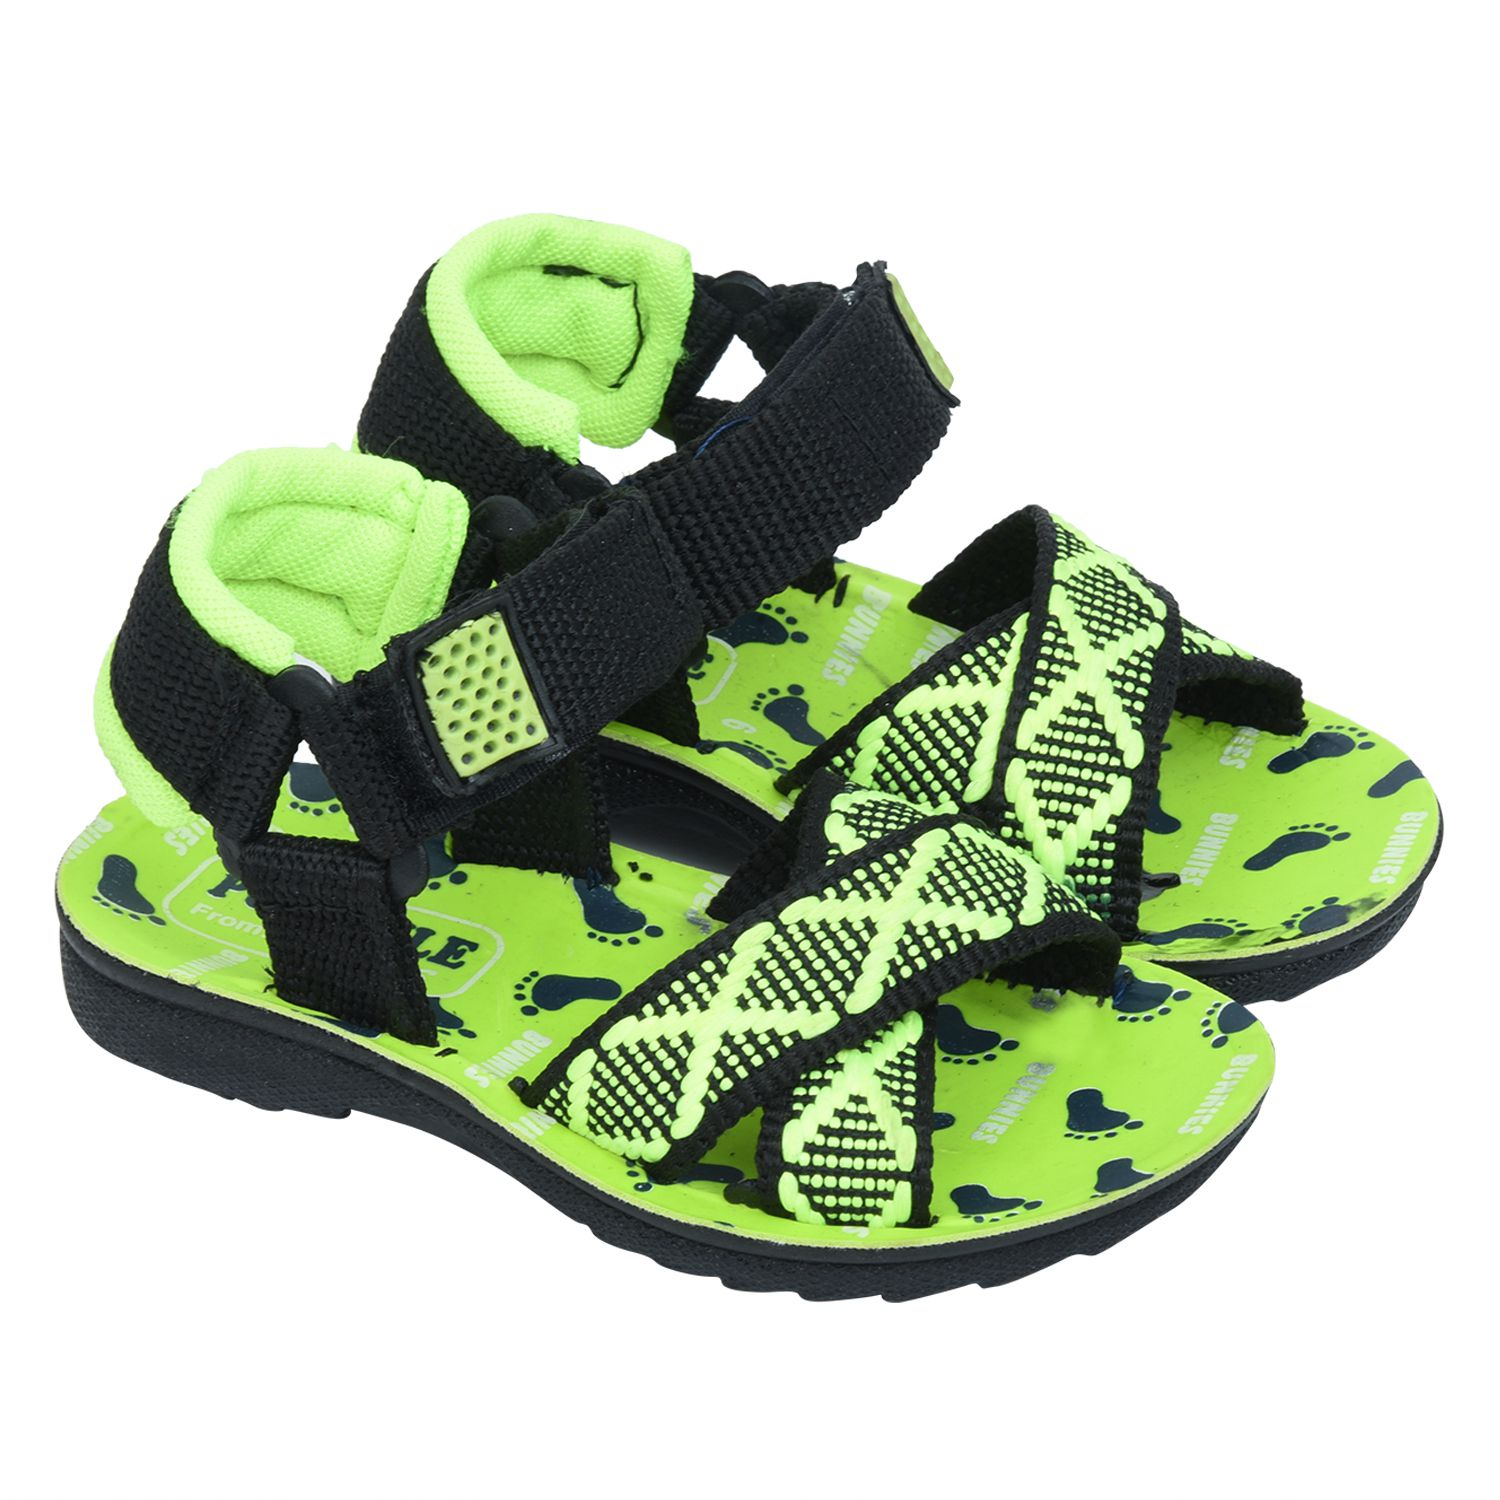 Bunnies kids sandal (green) discount excellent vhQUJC